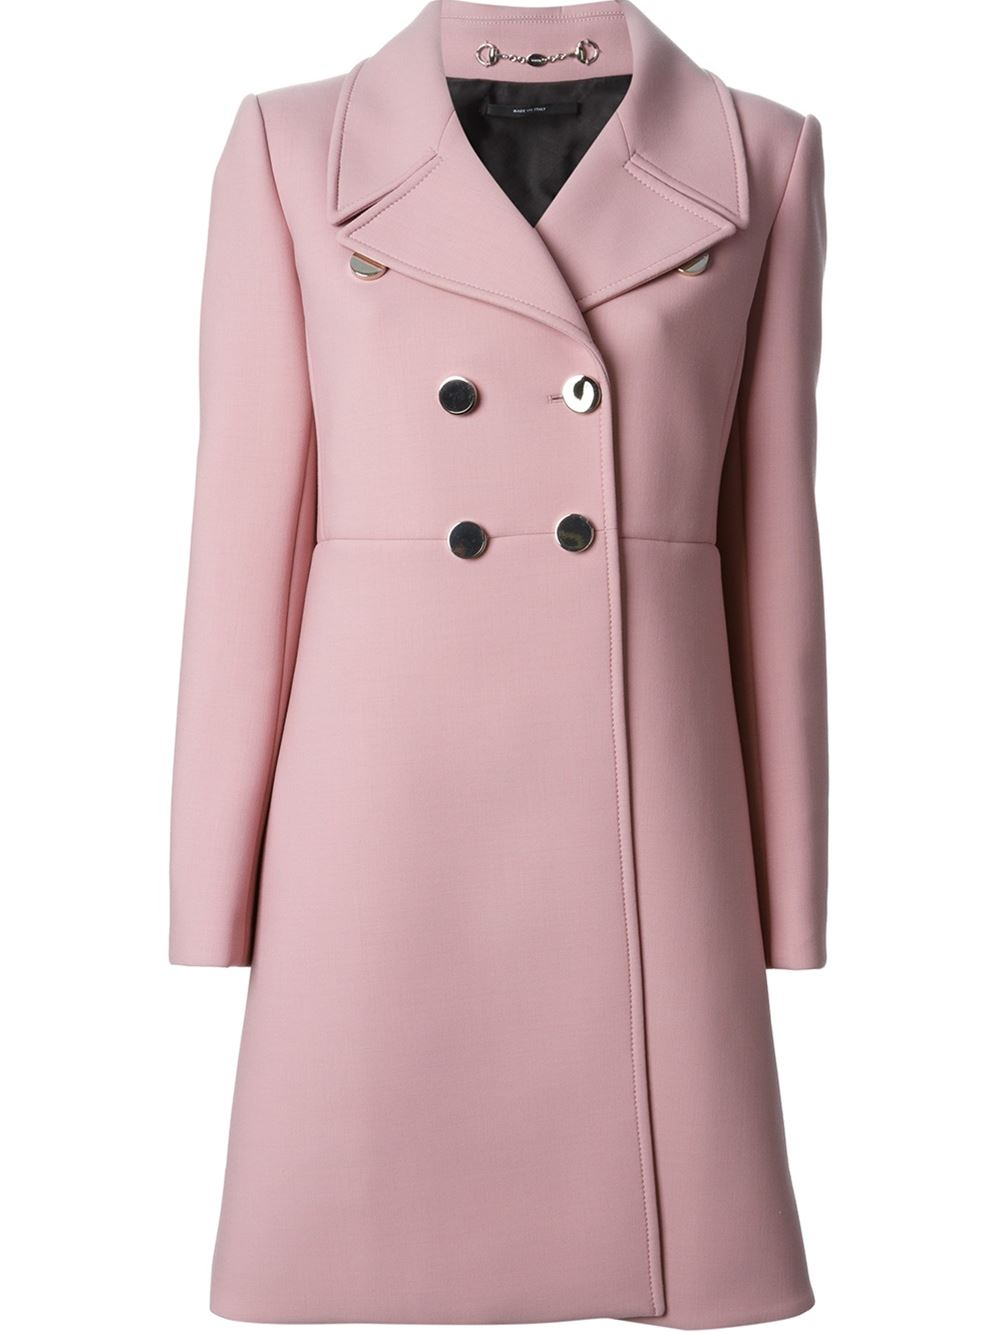 New Lyst - Gucci Silver Button Coat in Pink XF69